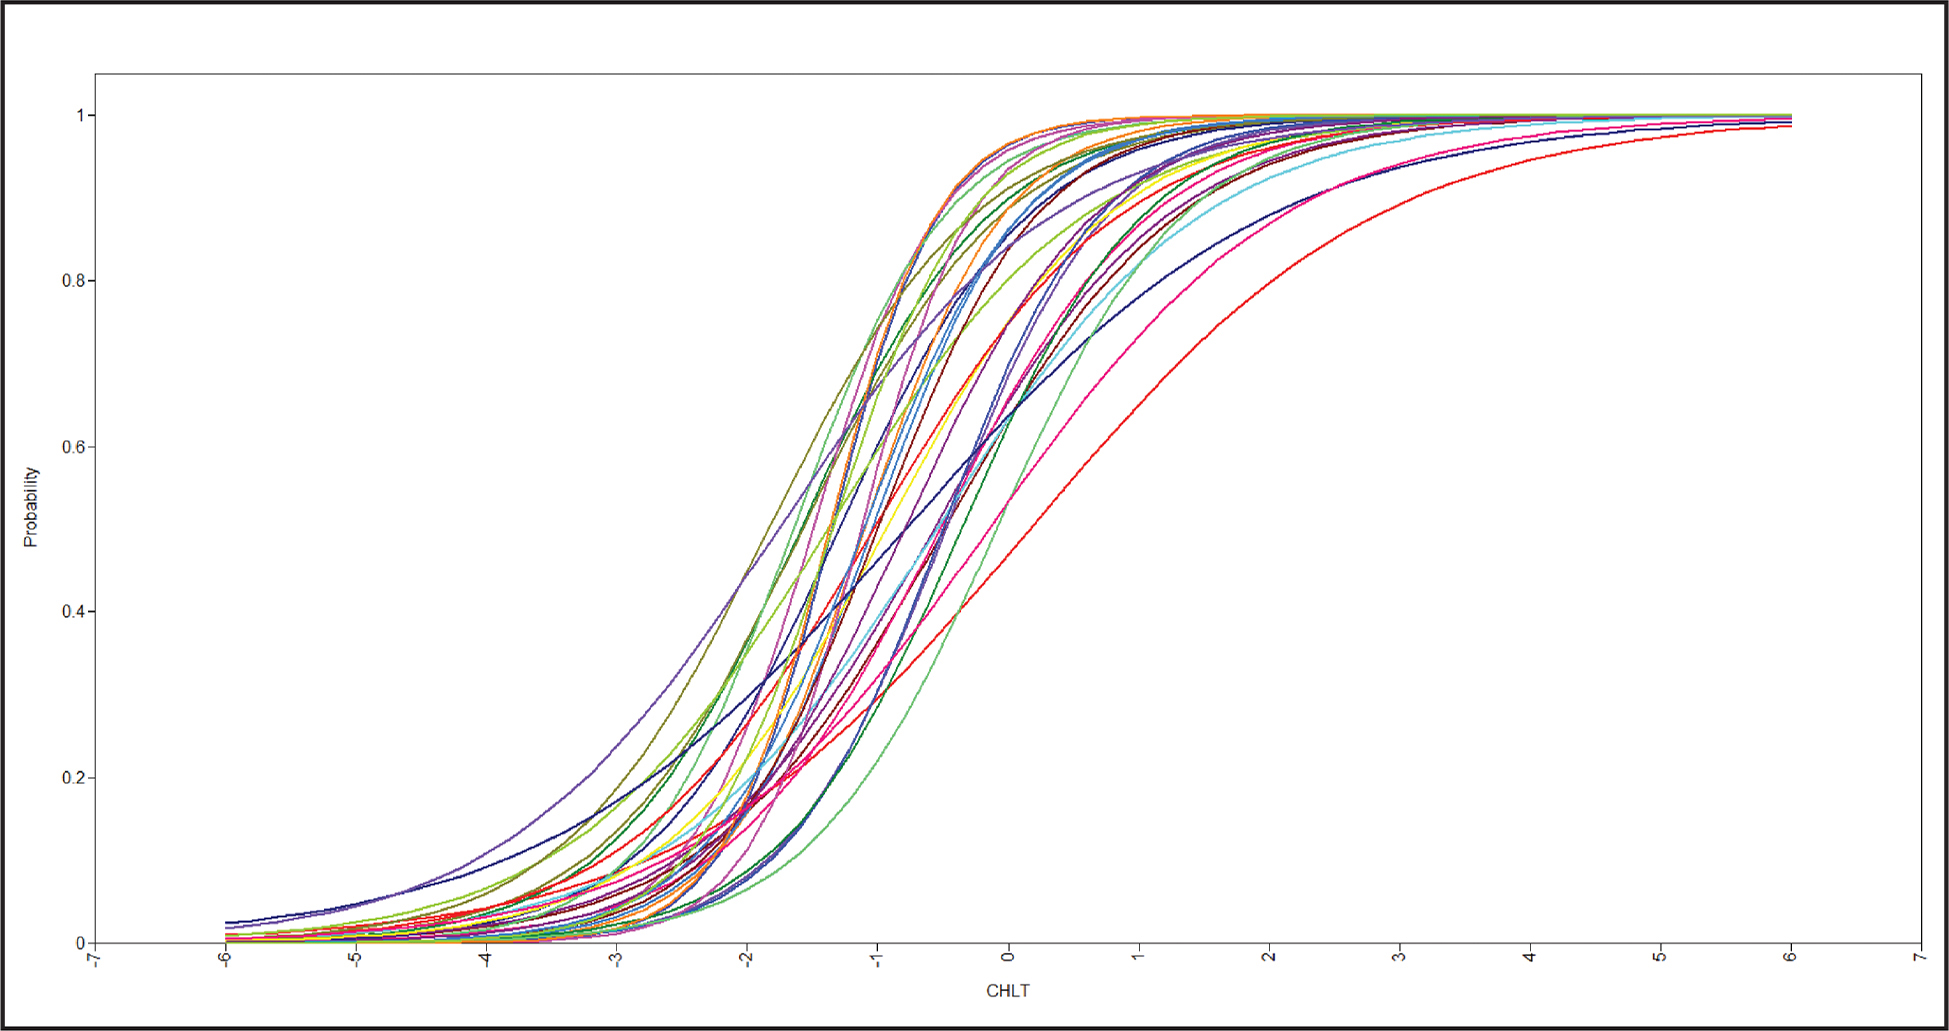 Item information curves from the two-parameter logistic model. CHLT = Cancer Health Literacy Test.